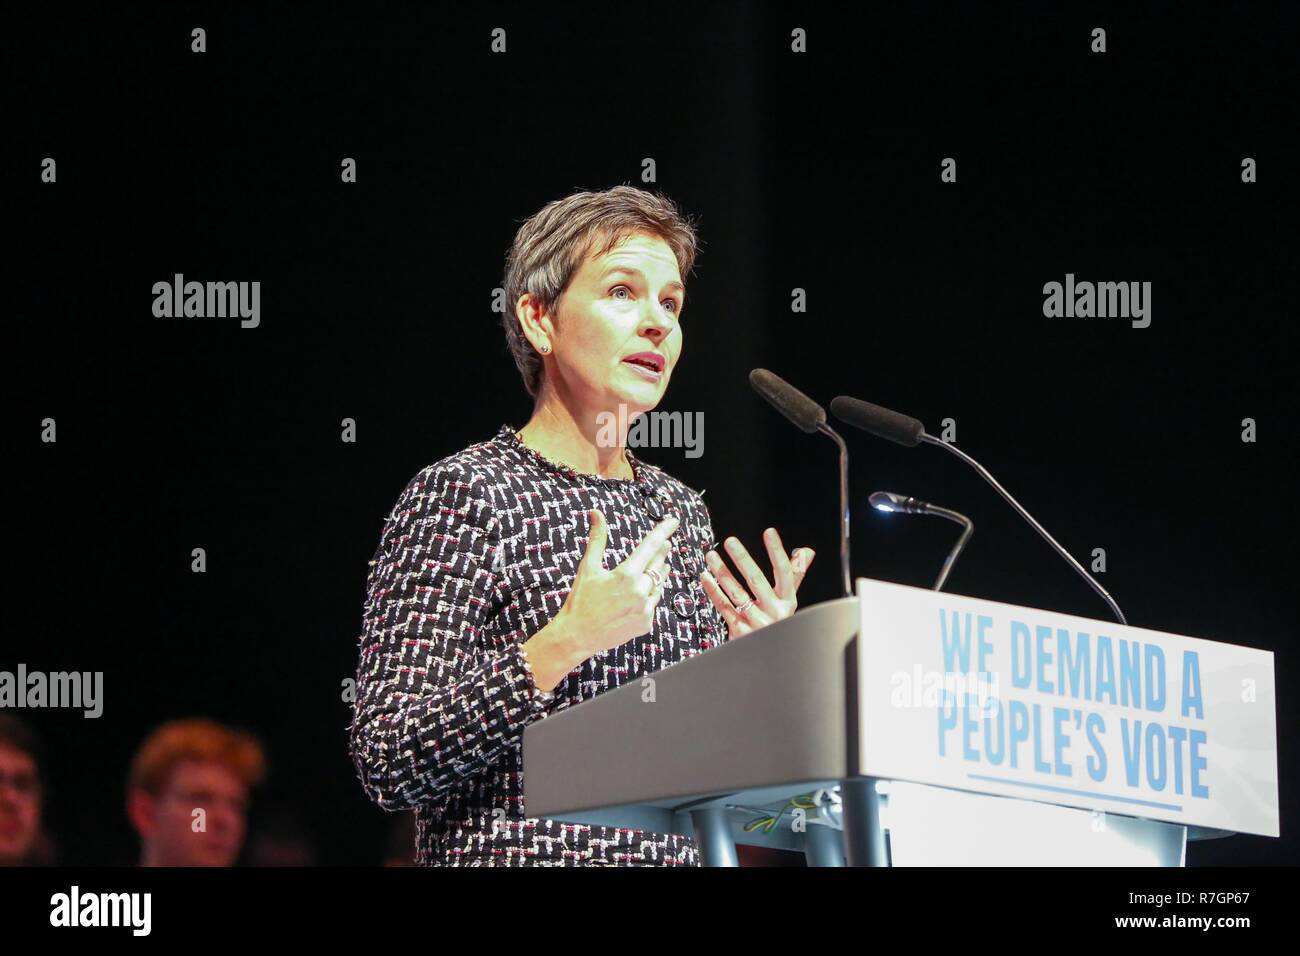 MP Mary Creagh is seen speaking during the rally. Hundreds of people attend the Best for Britain and the People's Vote campaign's rally at Excel Centre in East London on the eve of the week in which Parliament will vote on Prime Minister Theresa May's Brexit withdrawal deal. Stock Photo